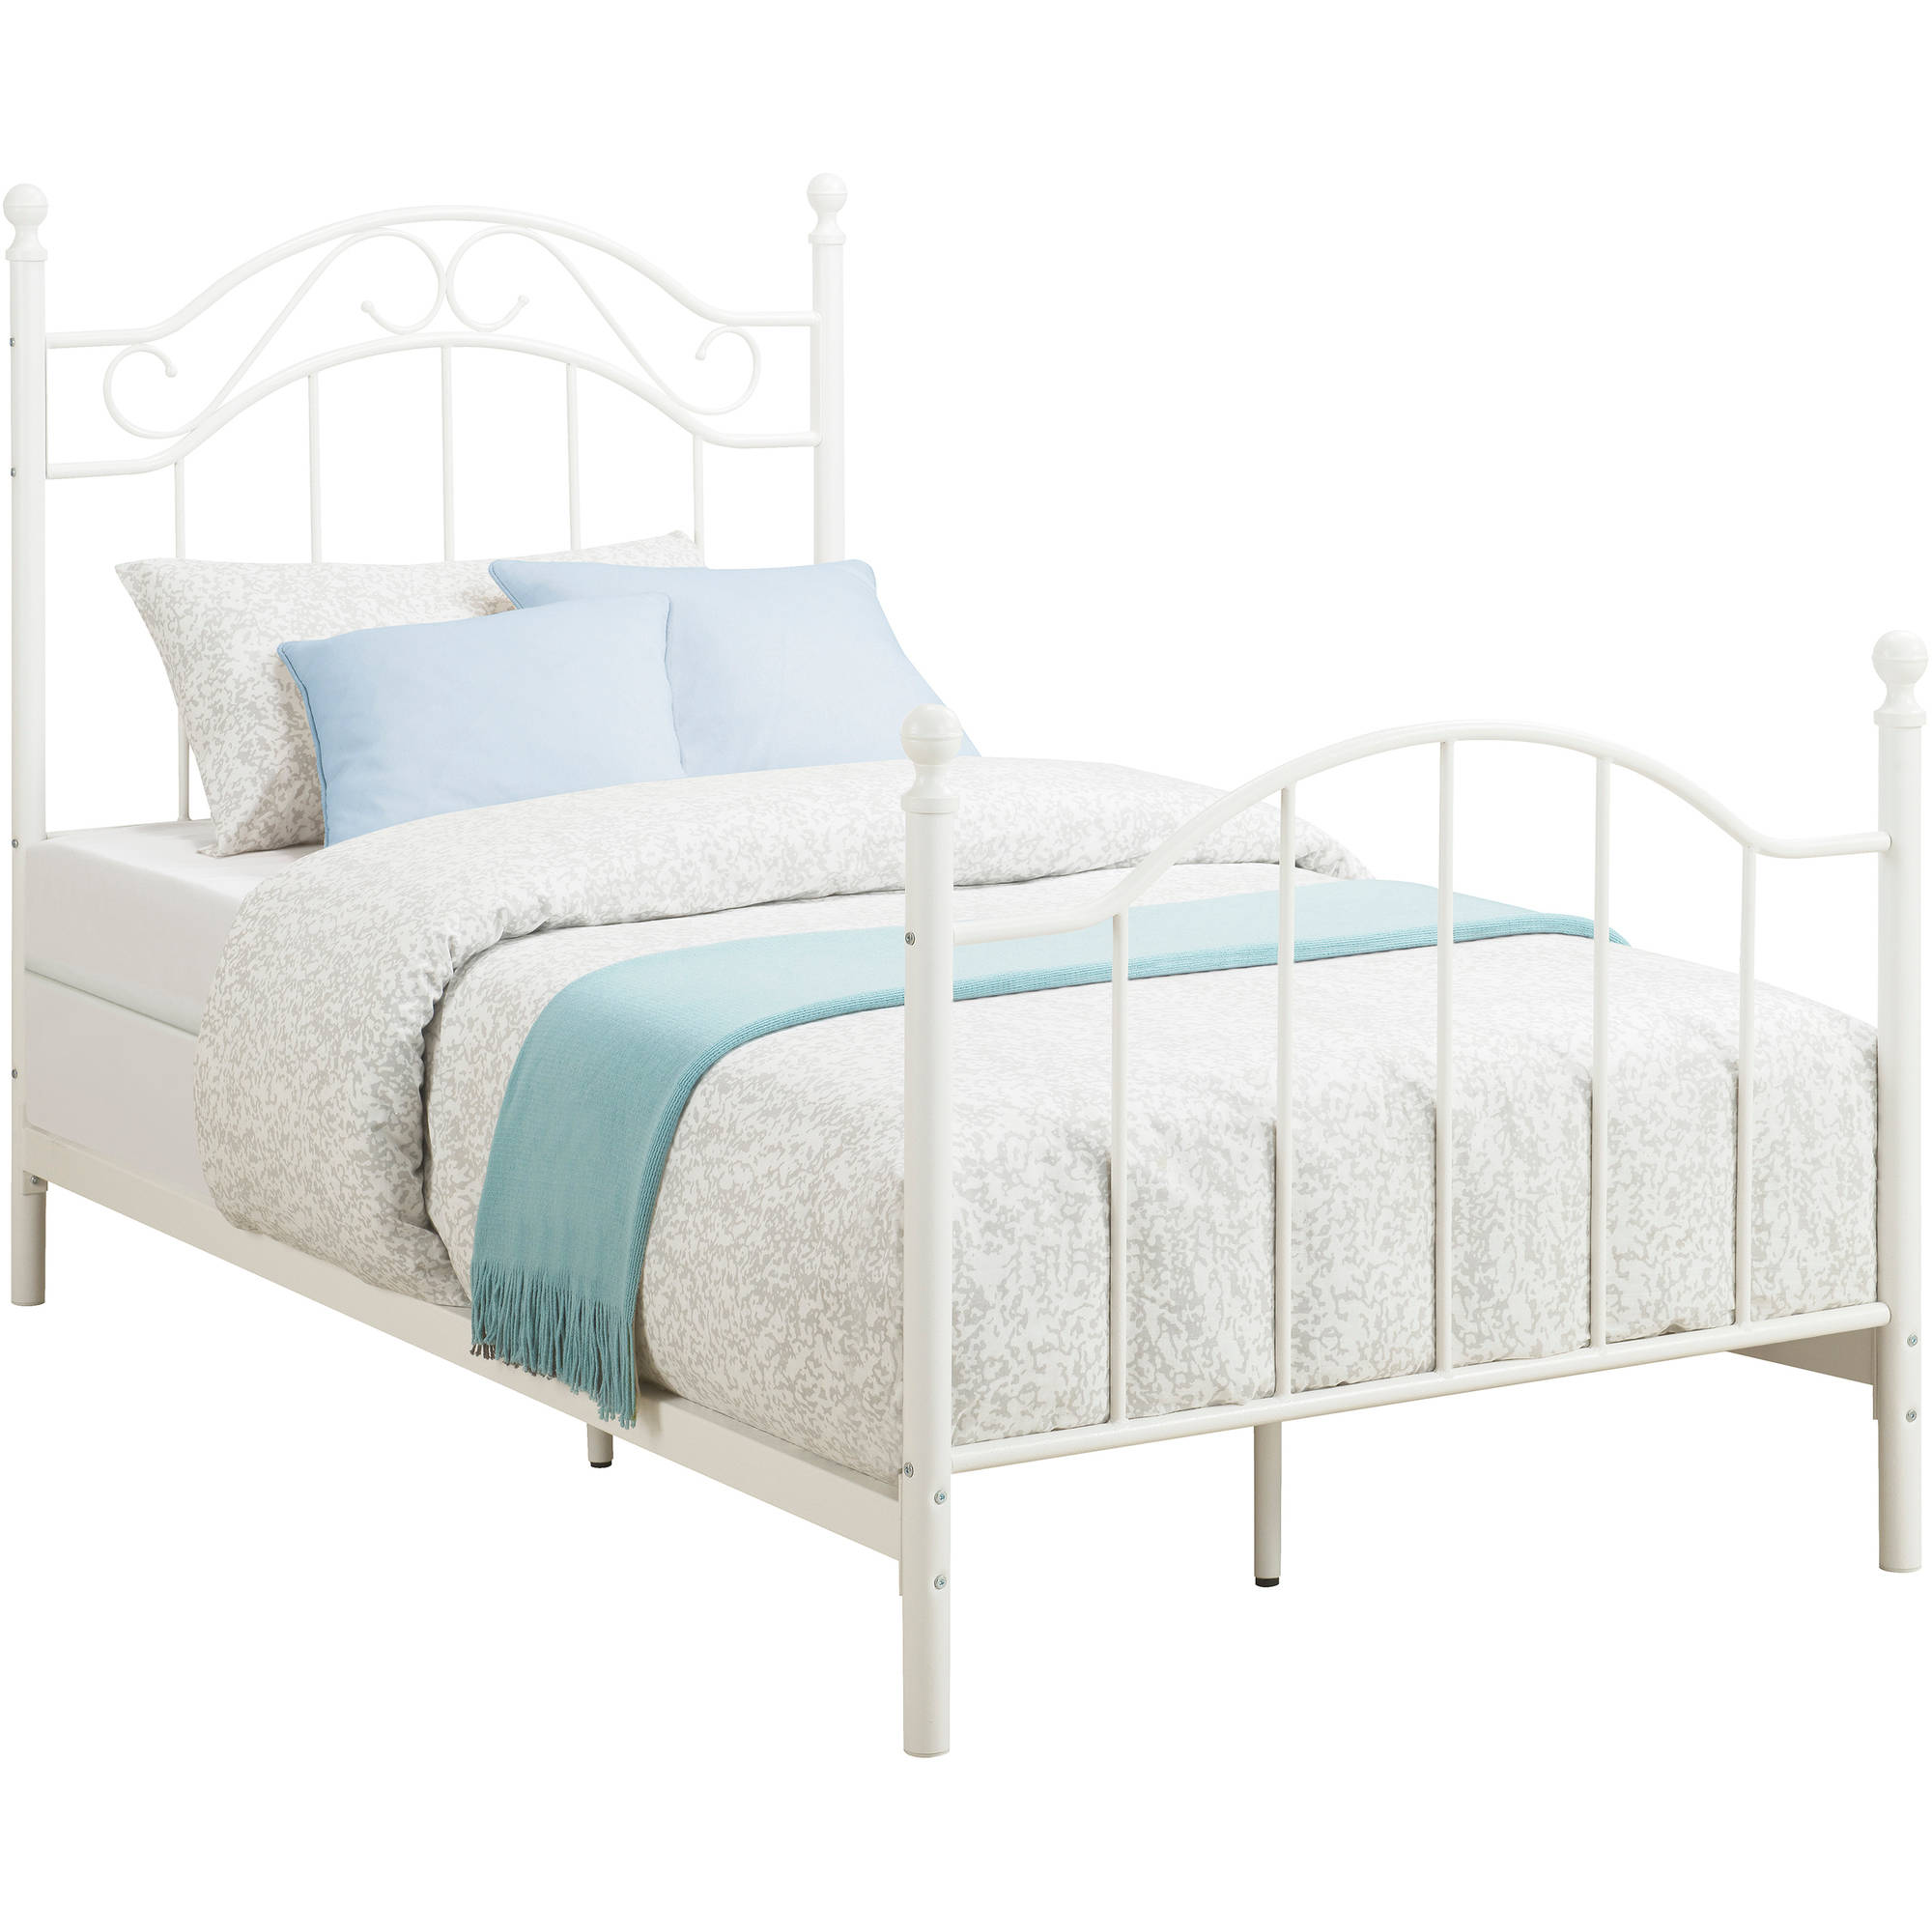 New Cheap Twin Bed Frames Set